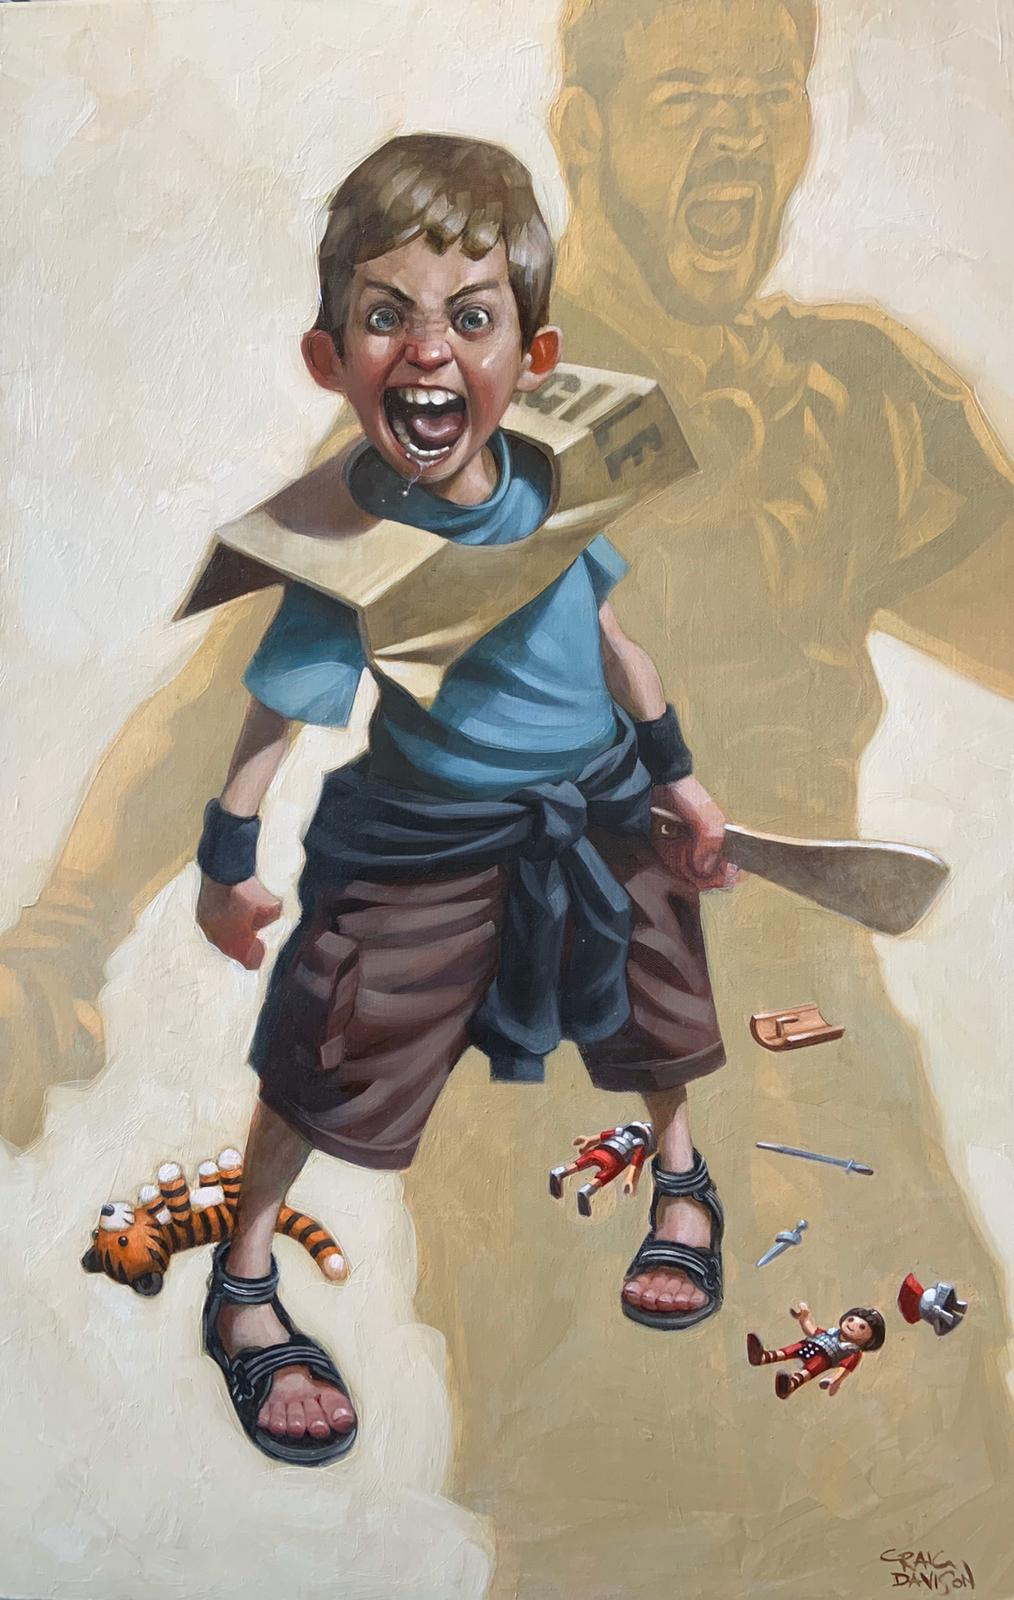 Craig Davison - ' Are You Not Entertained?' - Limited Edition Art & Original